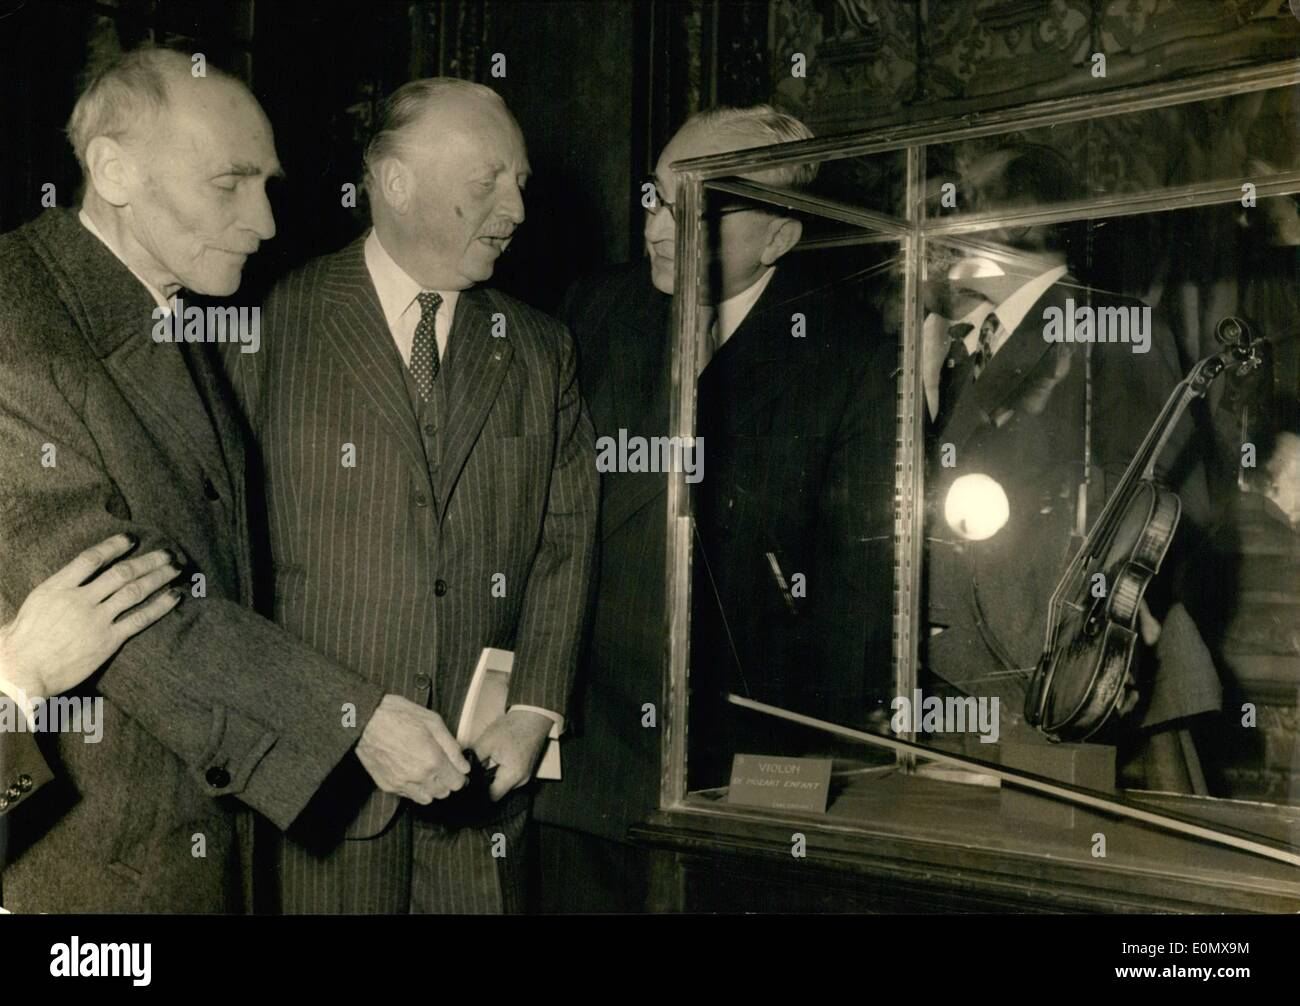 Oct. 10, 1956 - Mozart in Paris' exhibition opens at National Library: An exhibition entitled 'Mozart in Paris' (receiving the period when the young composer stayed and worked in Paris) opened at the Paris National Library this morning. Photo shows M. Paul Leon, deputising for the Minister of national Education (left) and Herr Vollburger, Austrian Ambassador to Paris examine the violin in which belong to young Mozart ( from the collections of Salzburg Theatre) - Stock Image